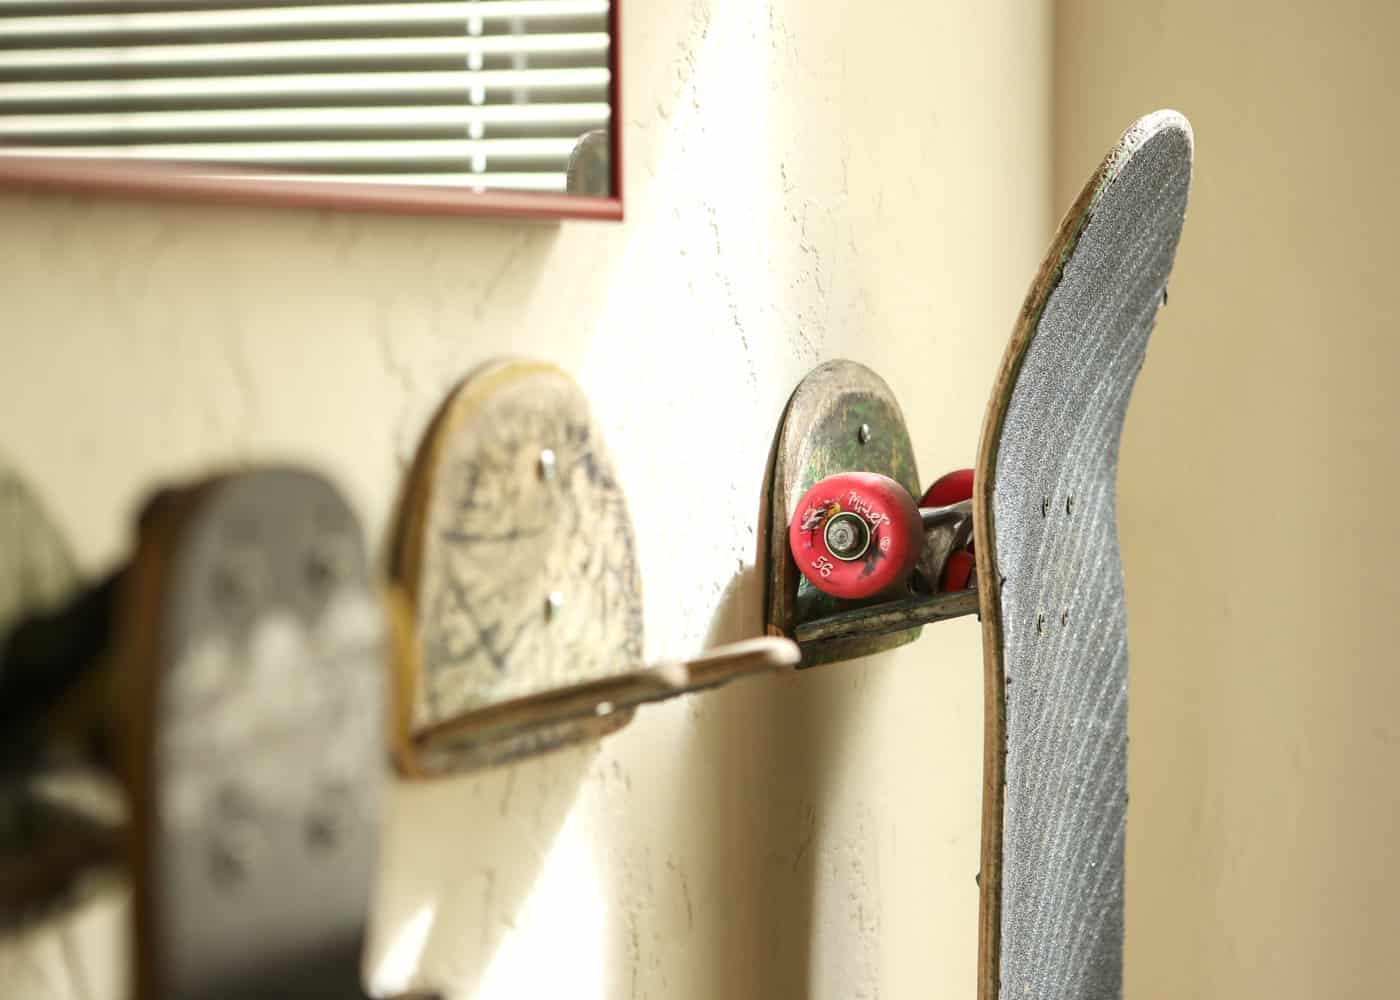 Skateboard hangers for new boards